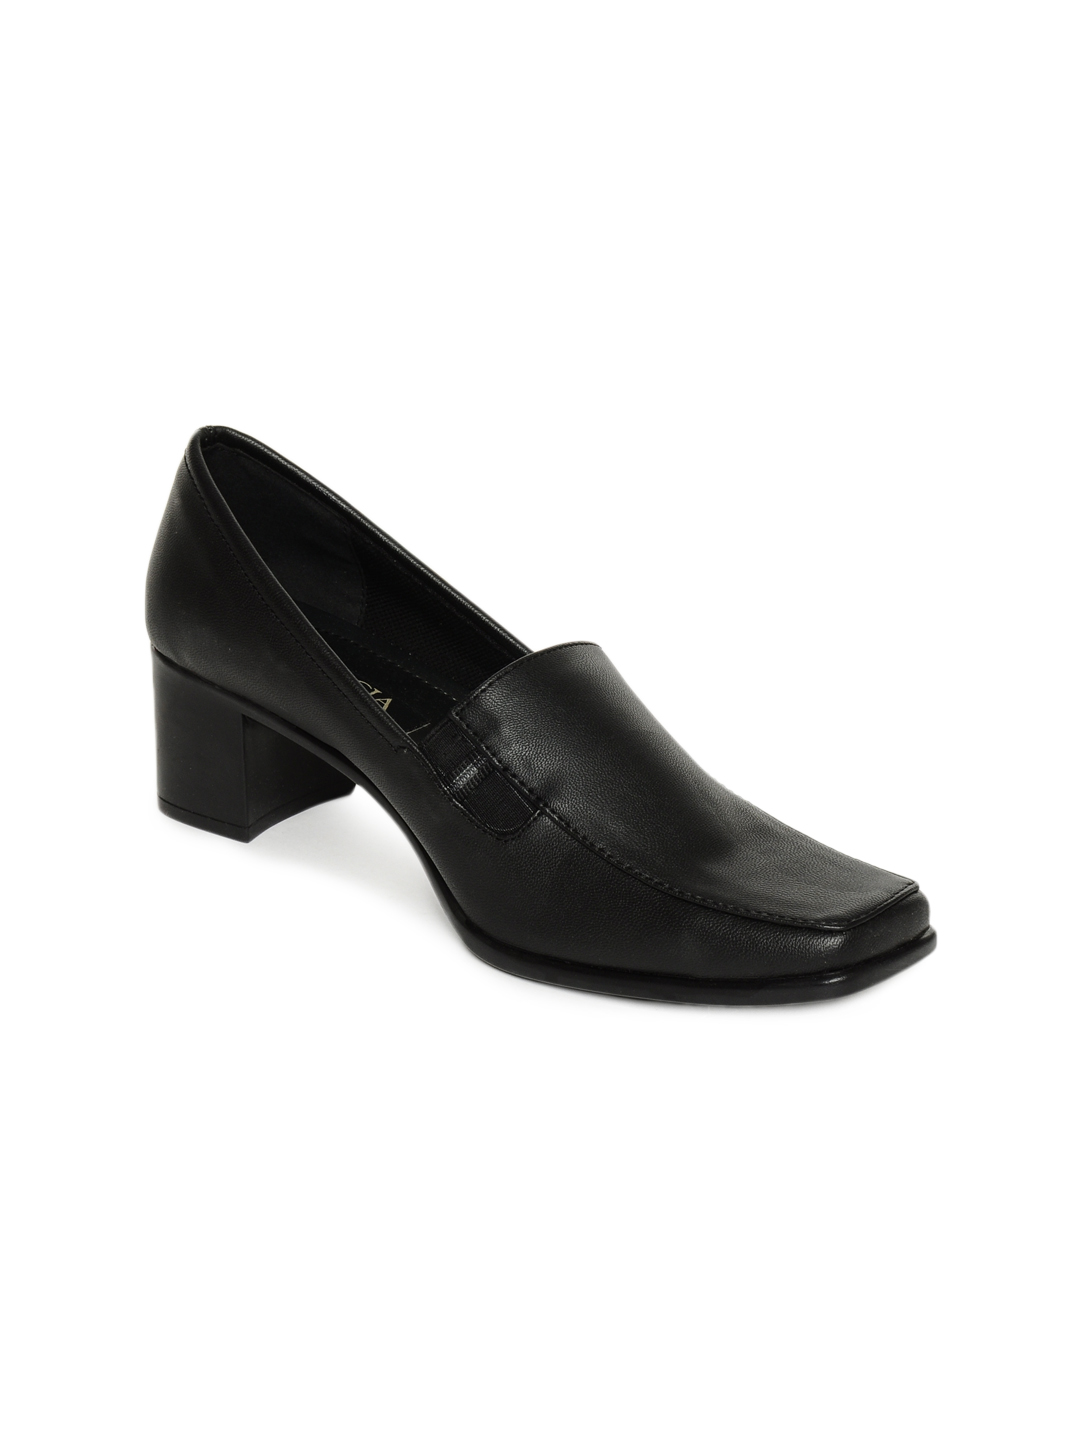 Women s Dress Shoes, Evening Special Occasion Shoes